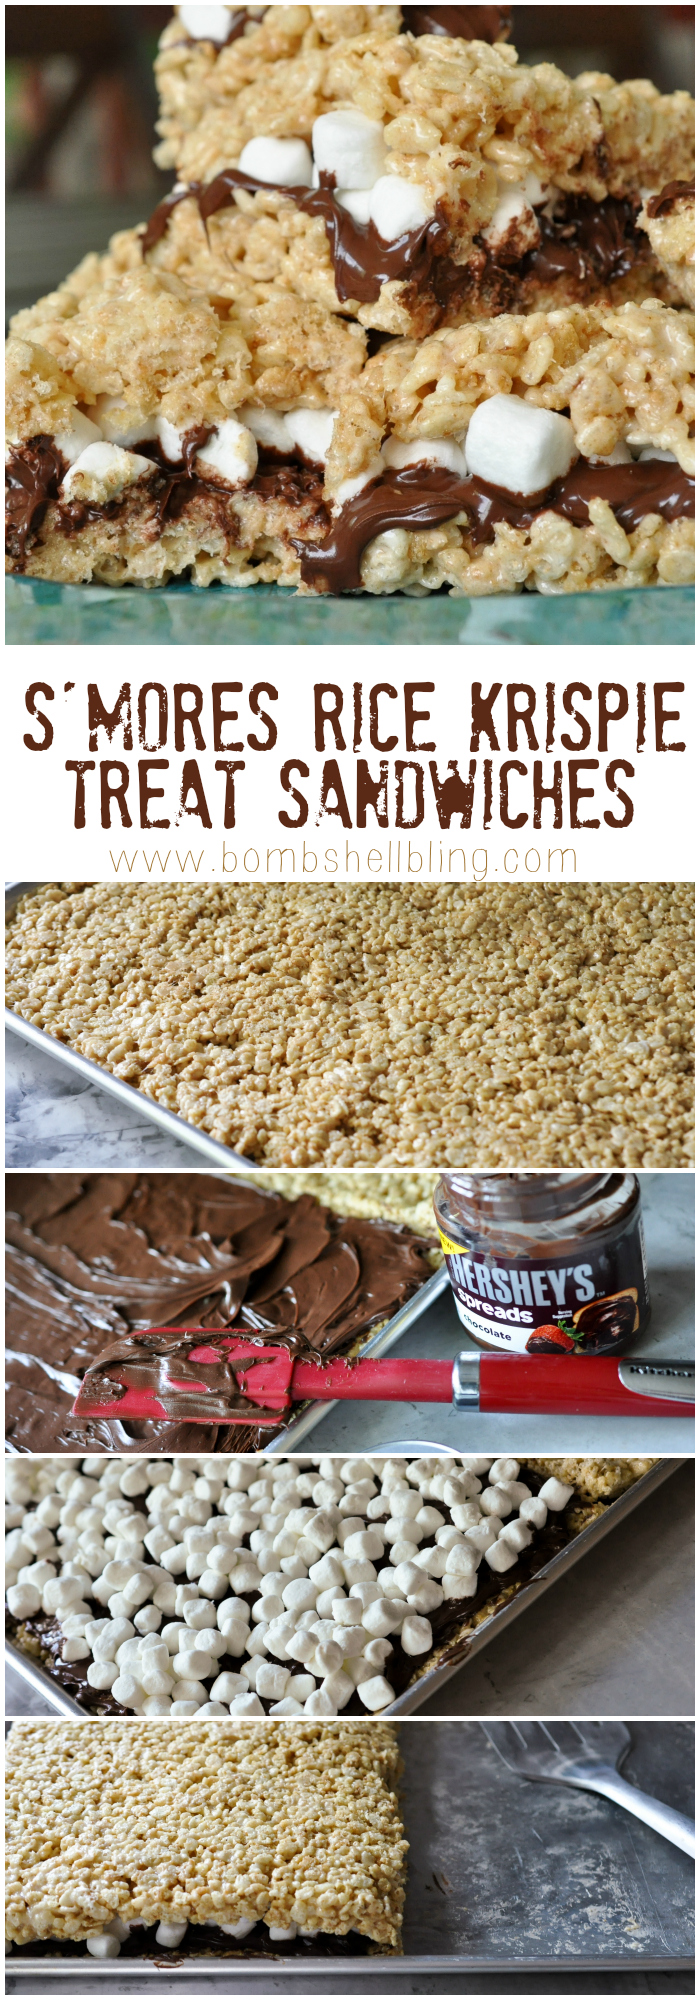 S'mores Rice Krispie Treat Sandwiches